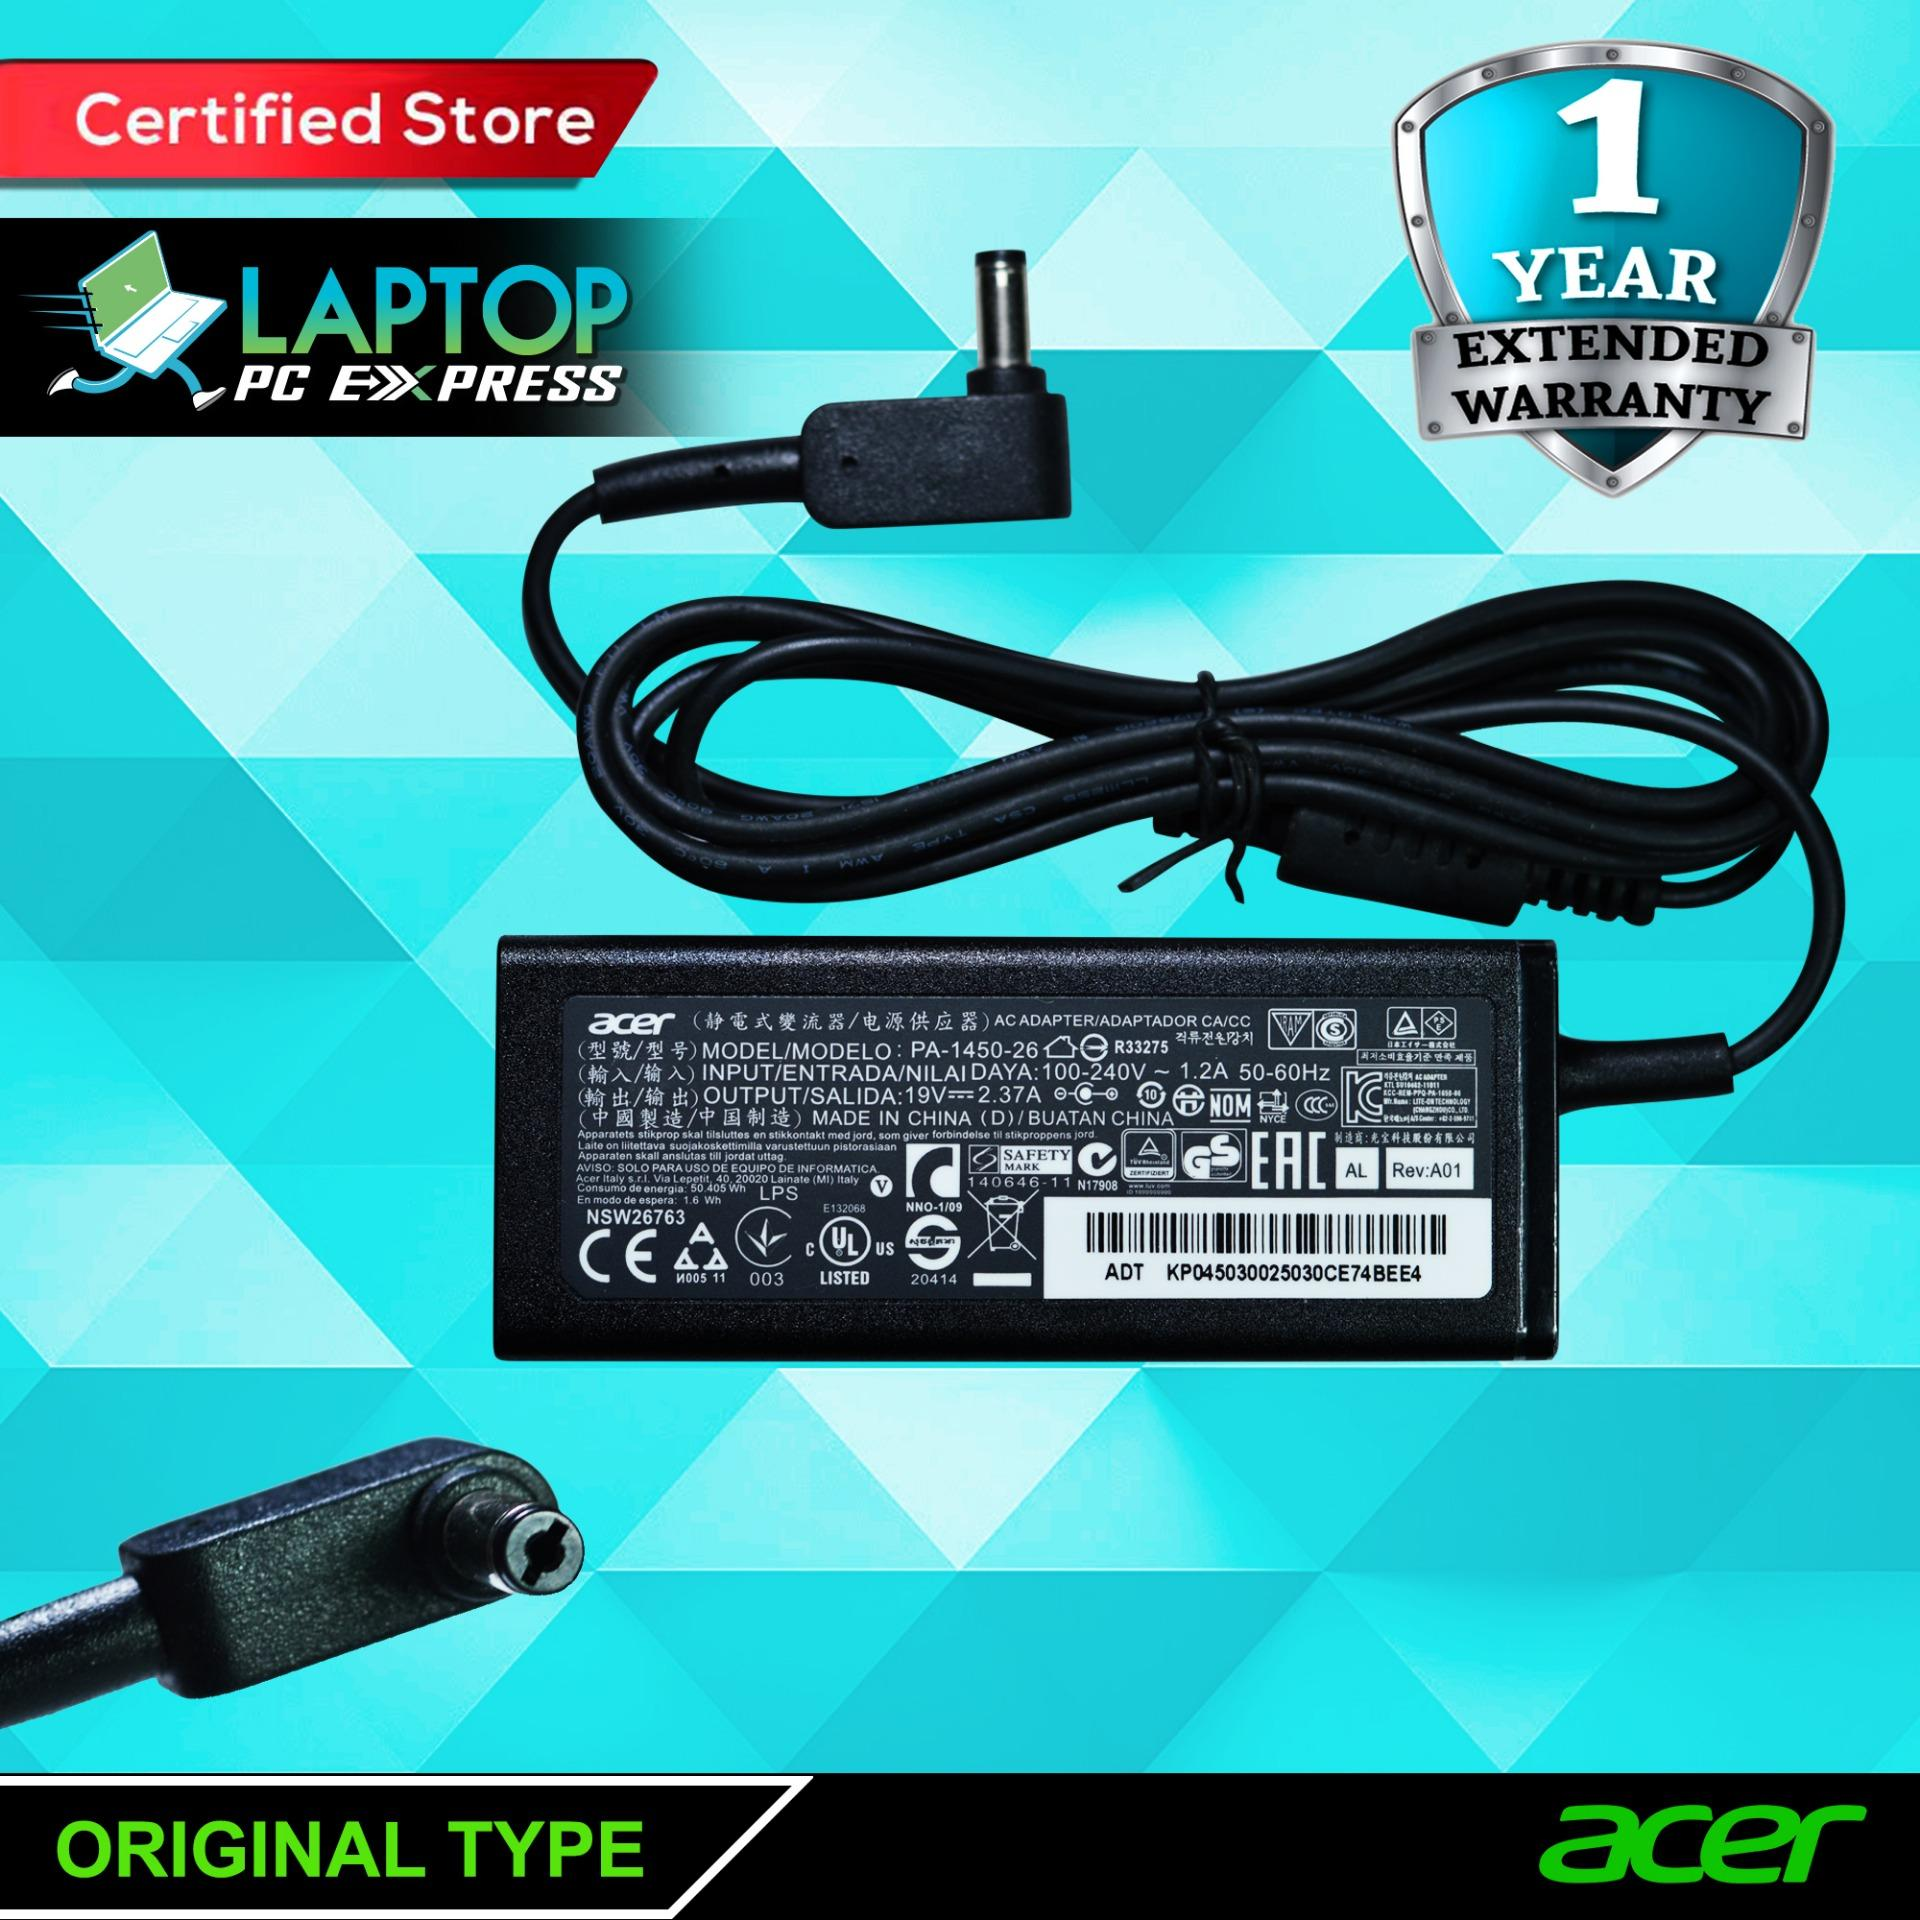 Acer Computer Accessories Philippines Pc For Sale Original Baterai V5 471g 431g 531 Al12a32 Ms2360 E1 432 Laptop Notebook Charger 19v 237a 45w 55mm X 17mm